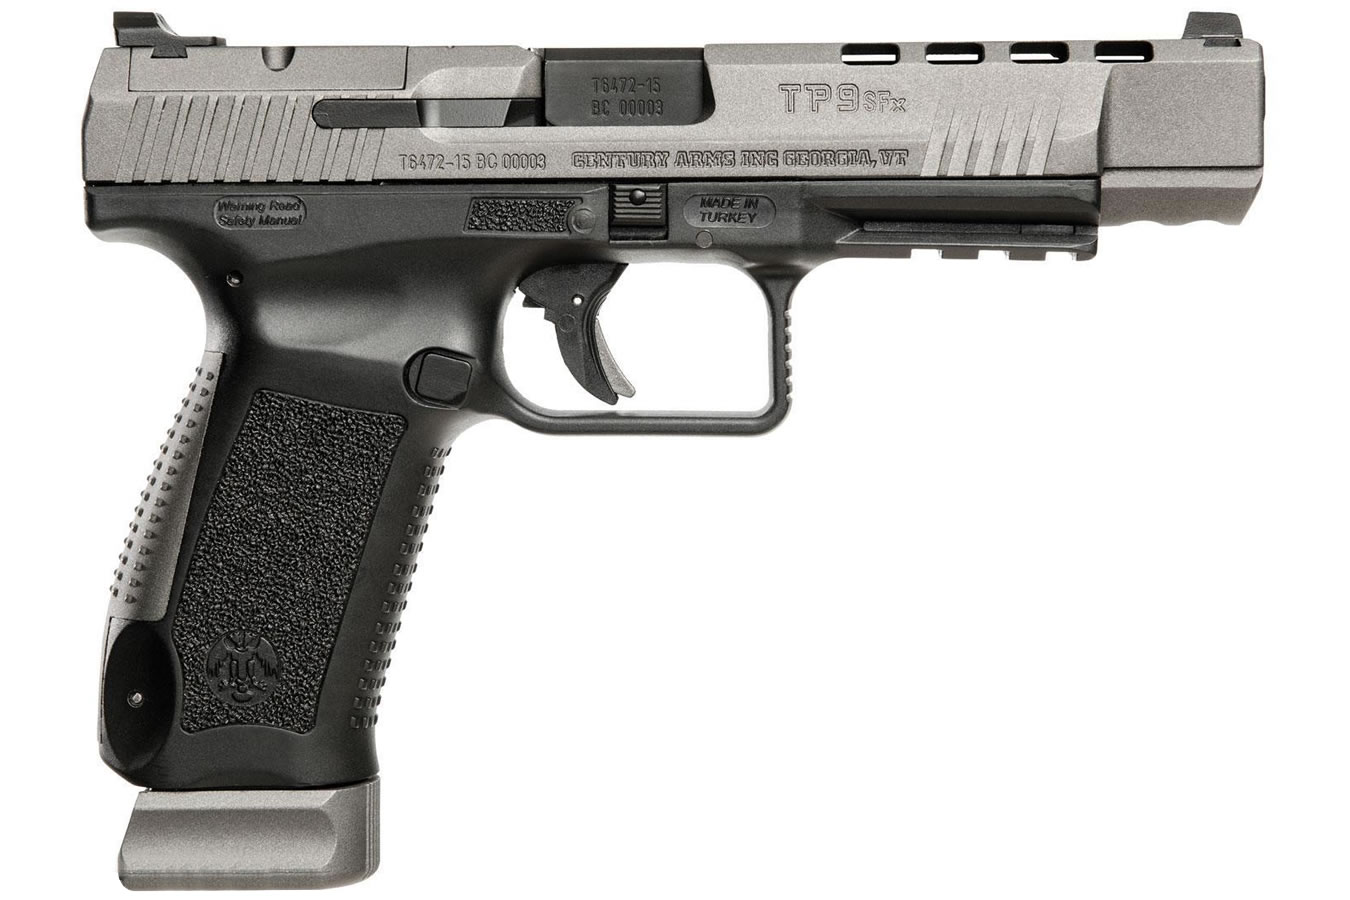 Canik TP9SFx 9mm Optic-Ready Pistol